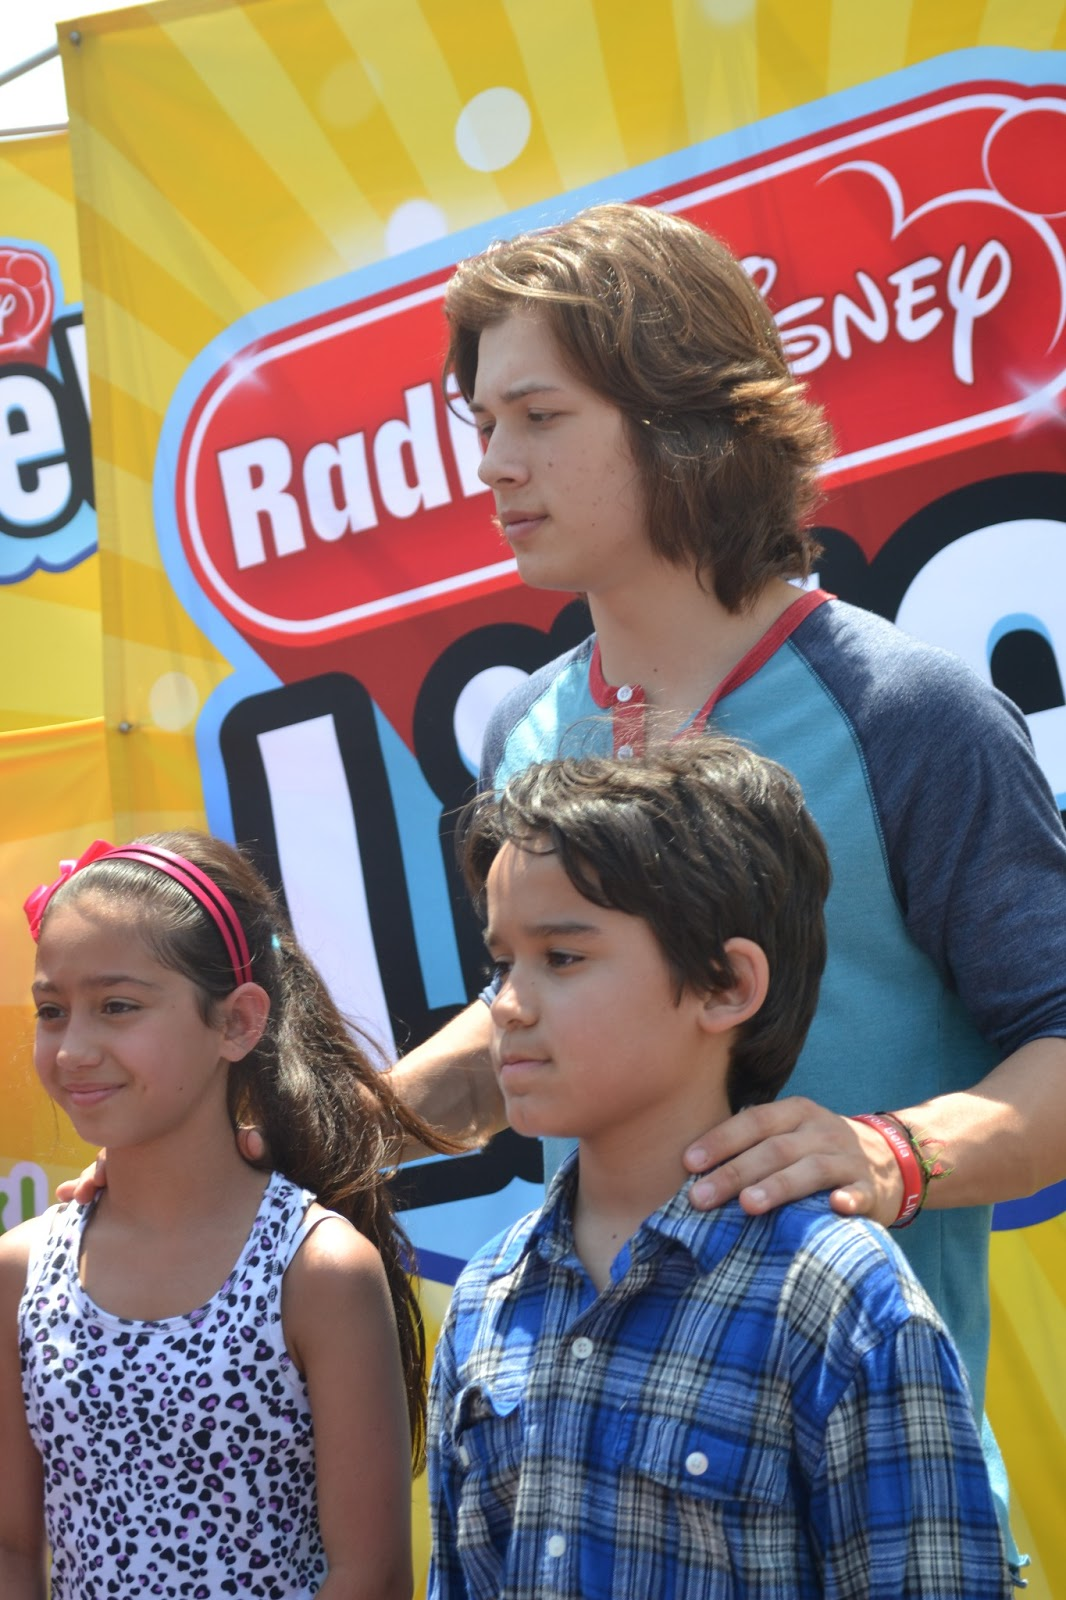 Keys atheneum a charlotte mason inspired life meeting leo howard on stage for a game kristyandbryce Gallery